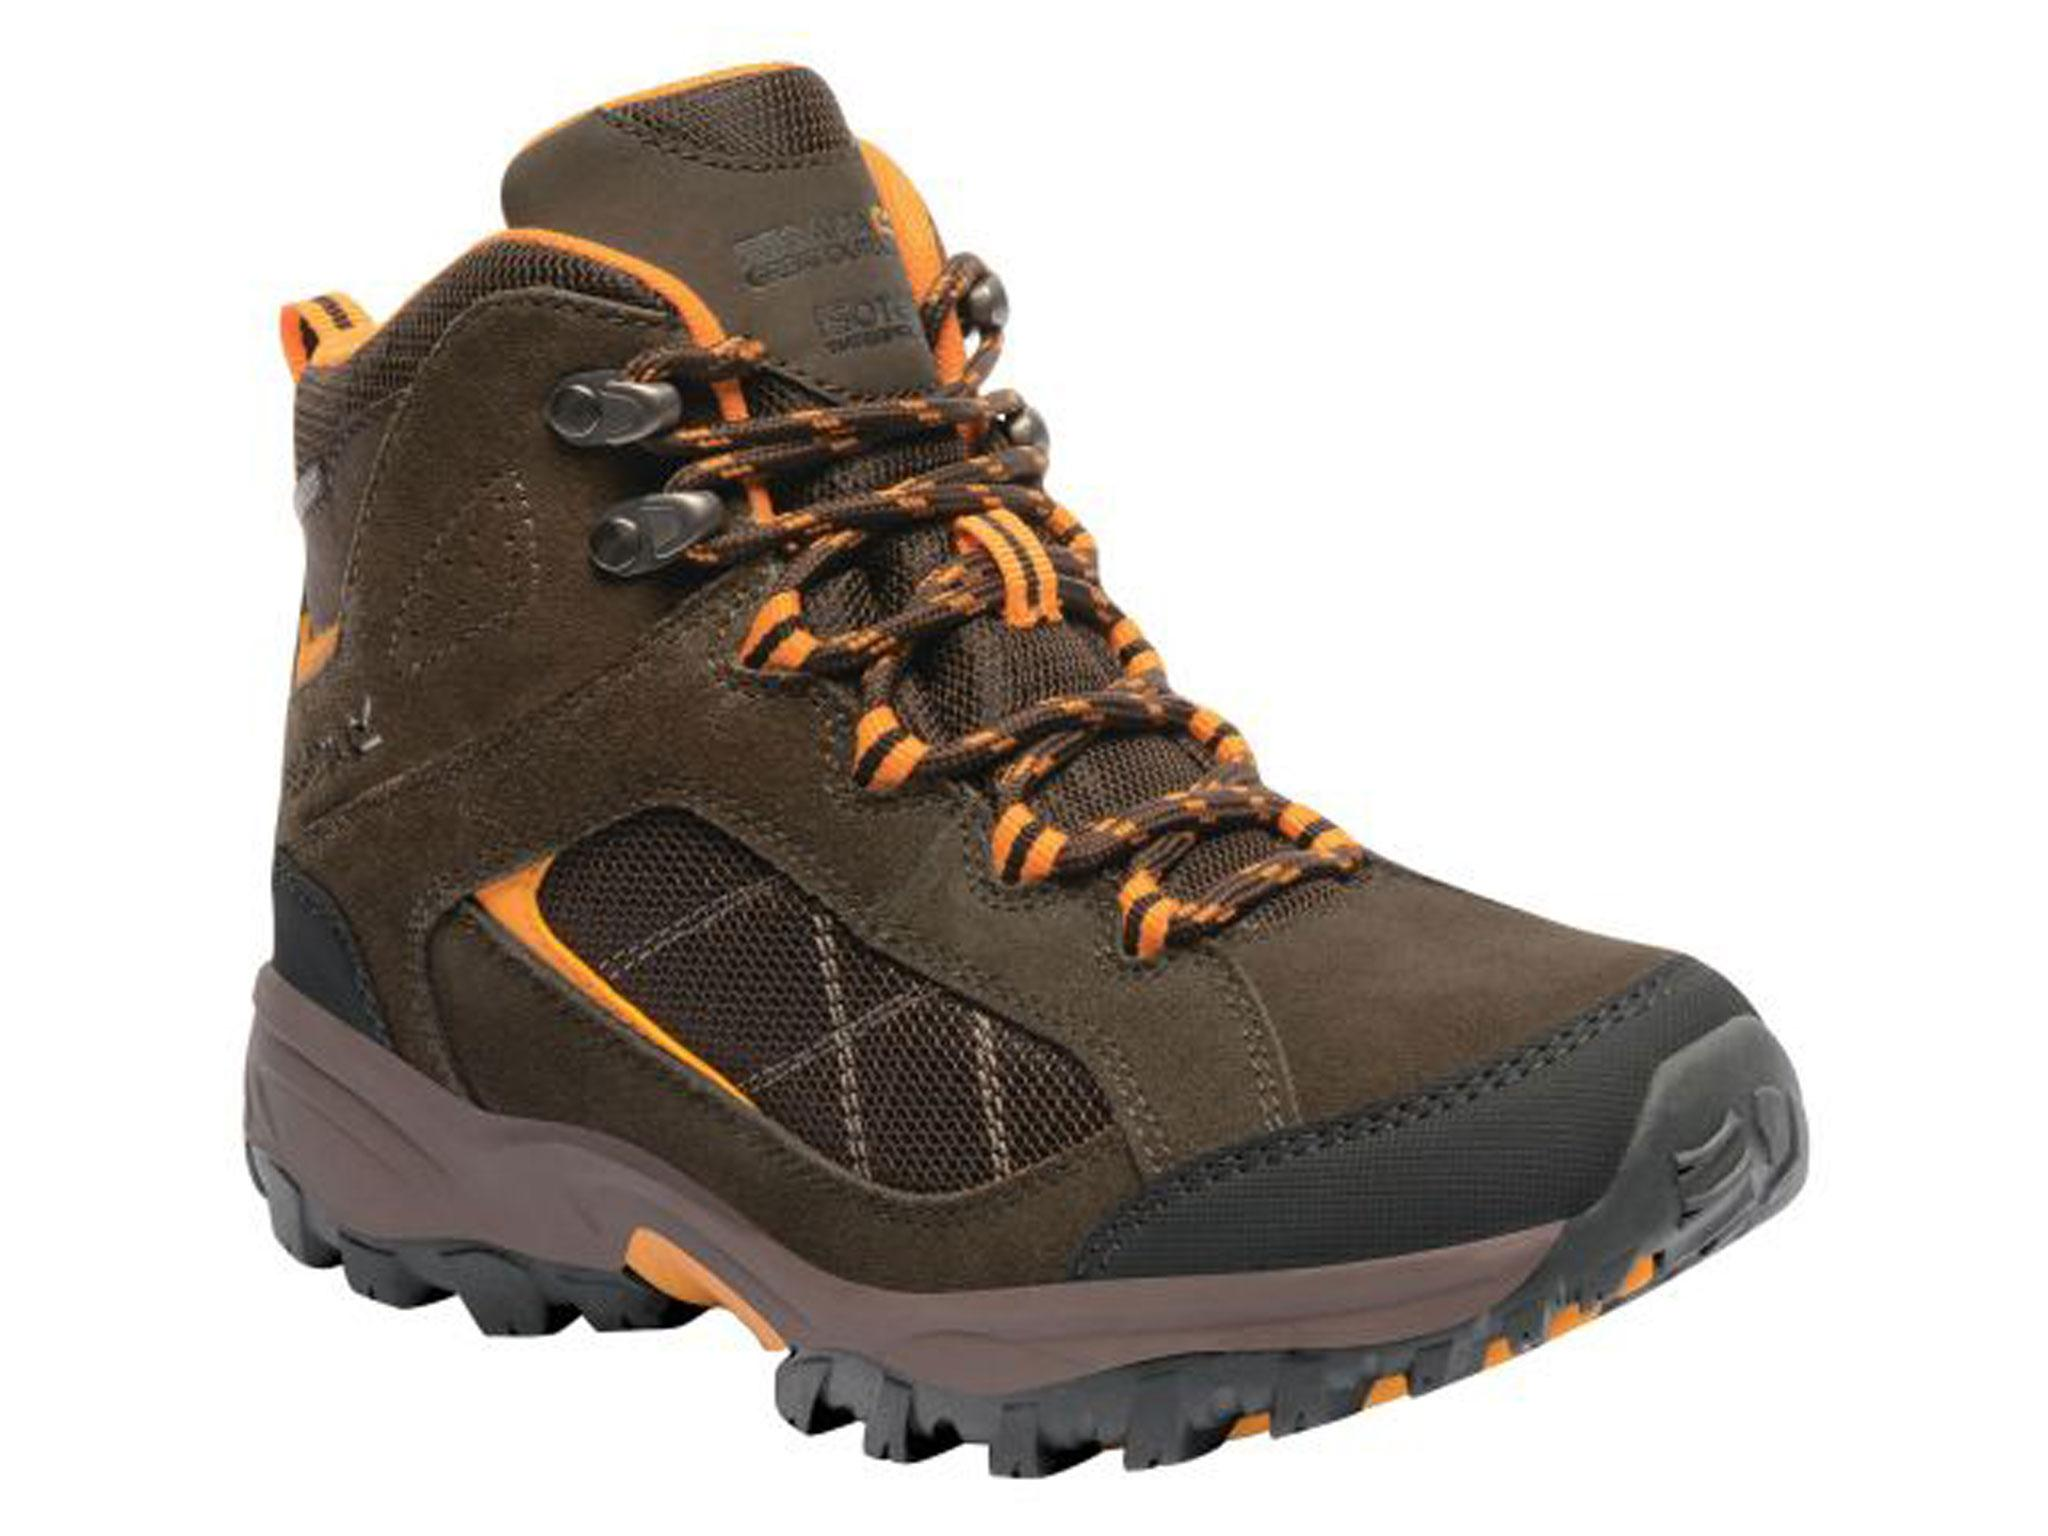 11 best hiking boots and shoes for women  189f49406d